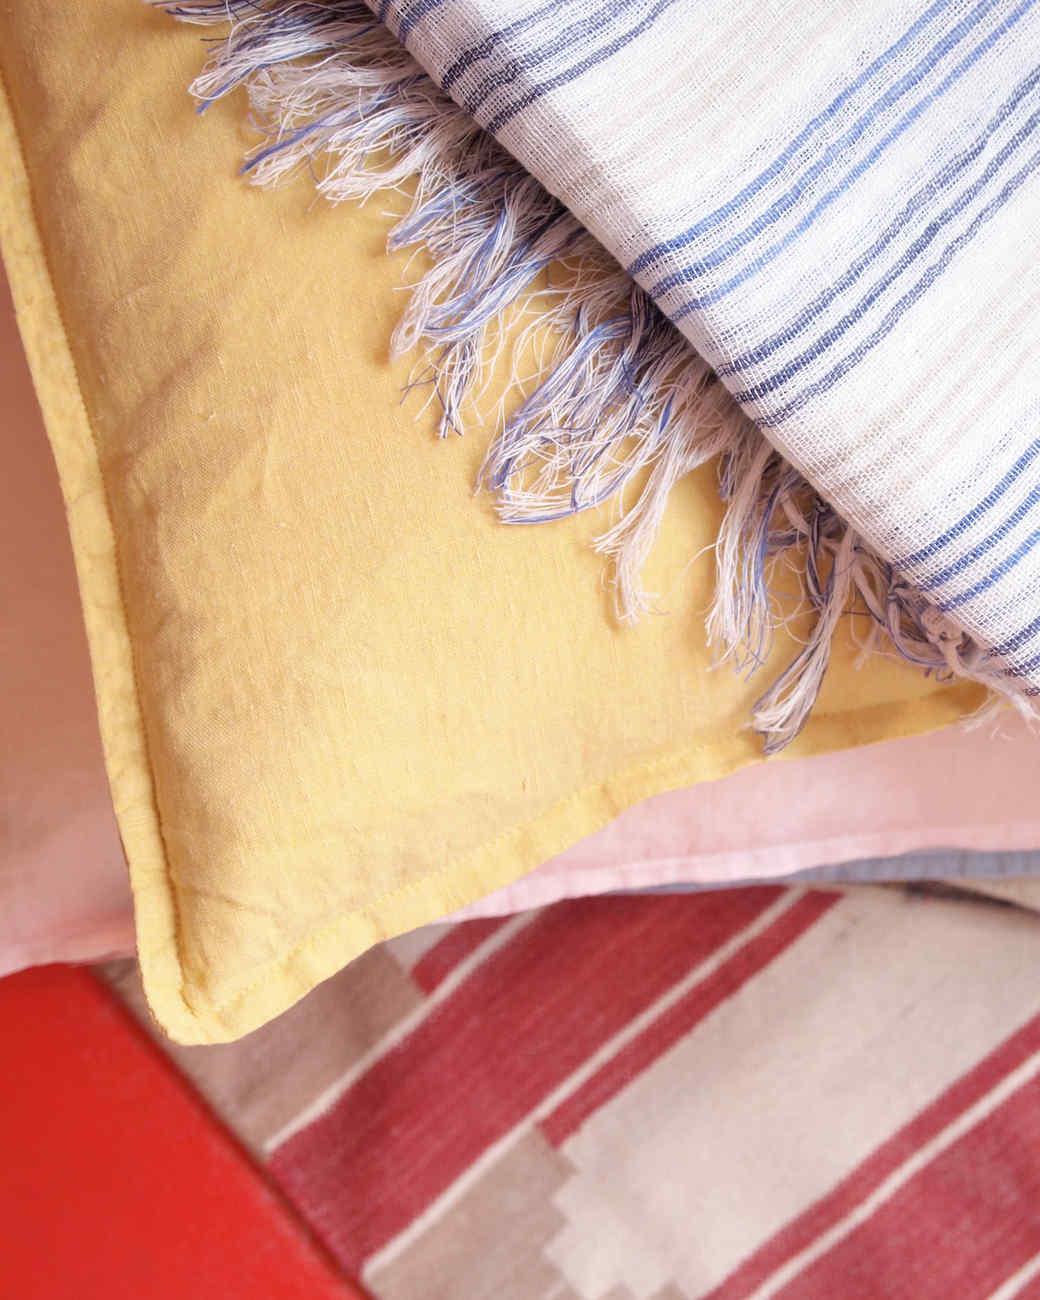 11-mix-and-match-textiles-will-taylor.jpg